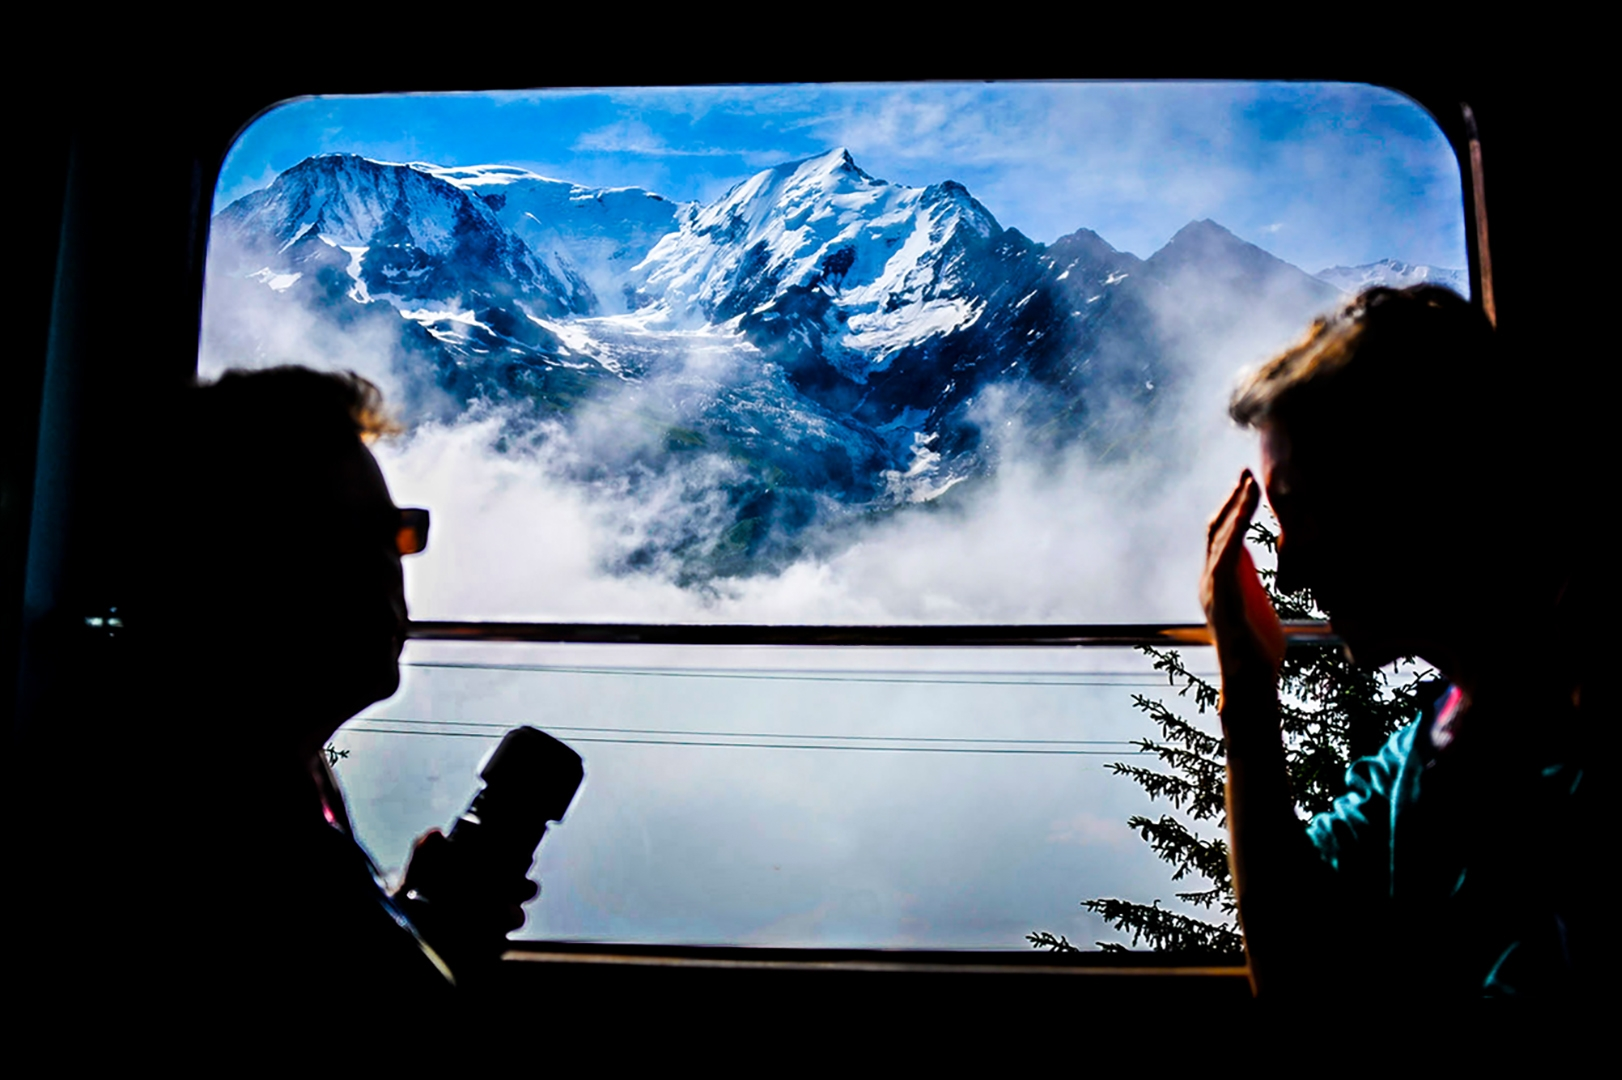 Entries now open for the 2021 CEWE Photo Award